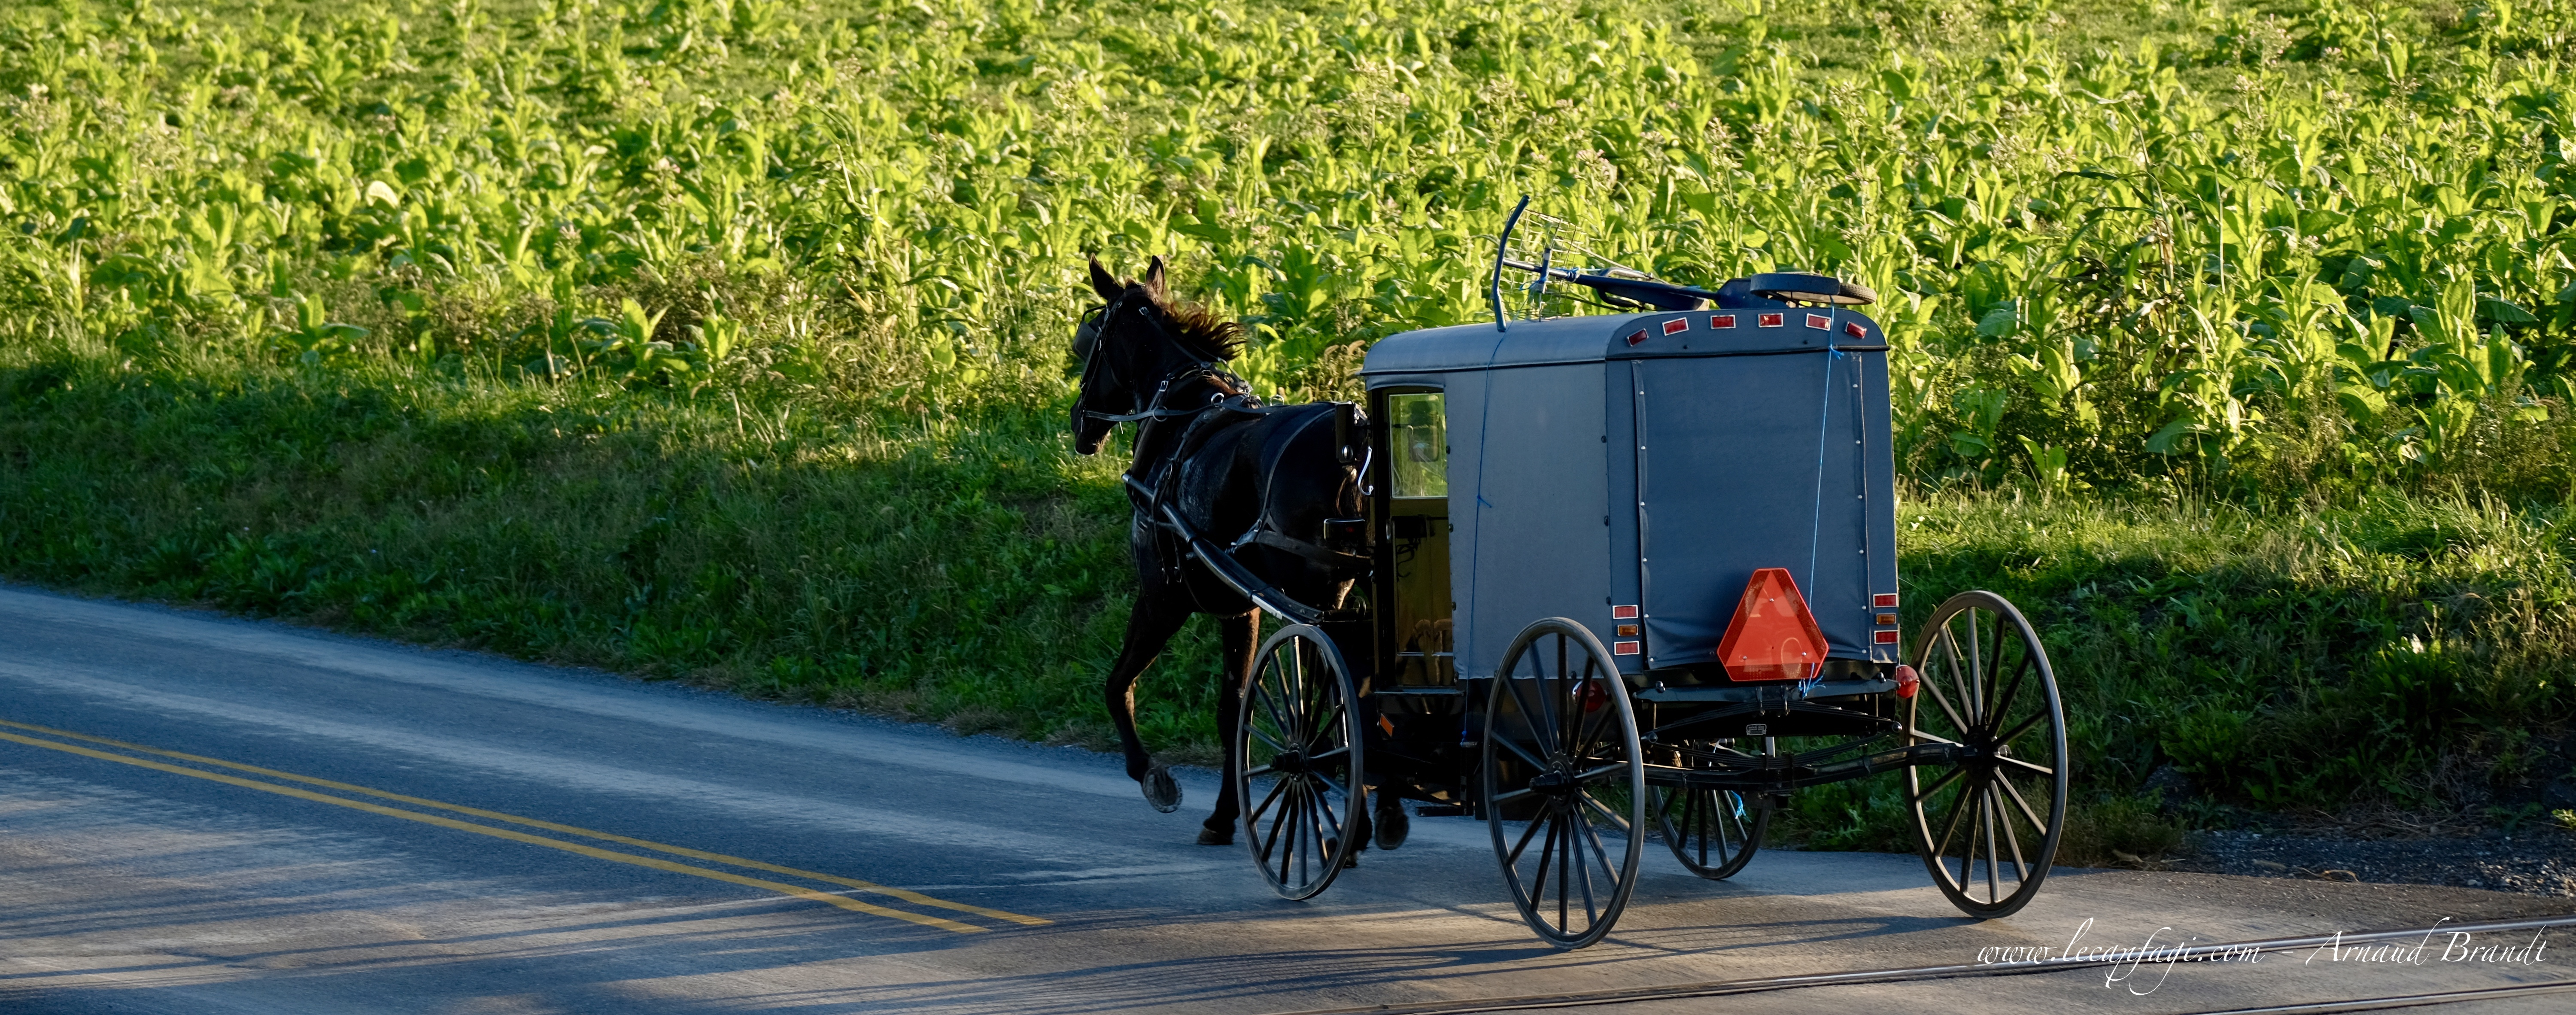 Lancaster county - home of the Amish